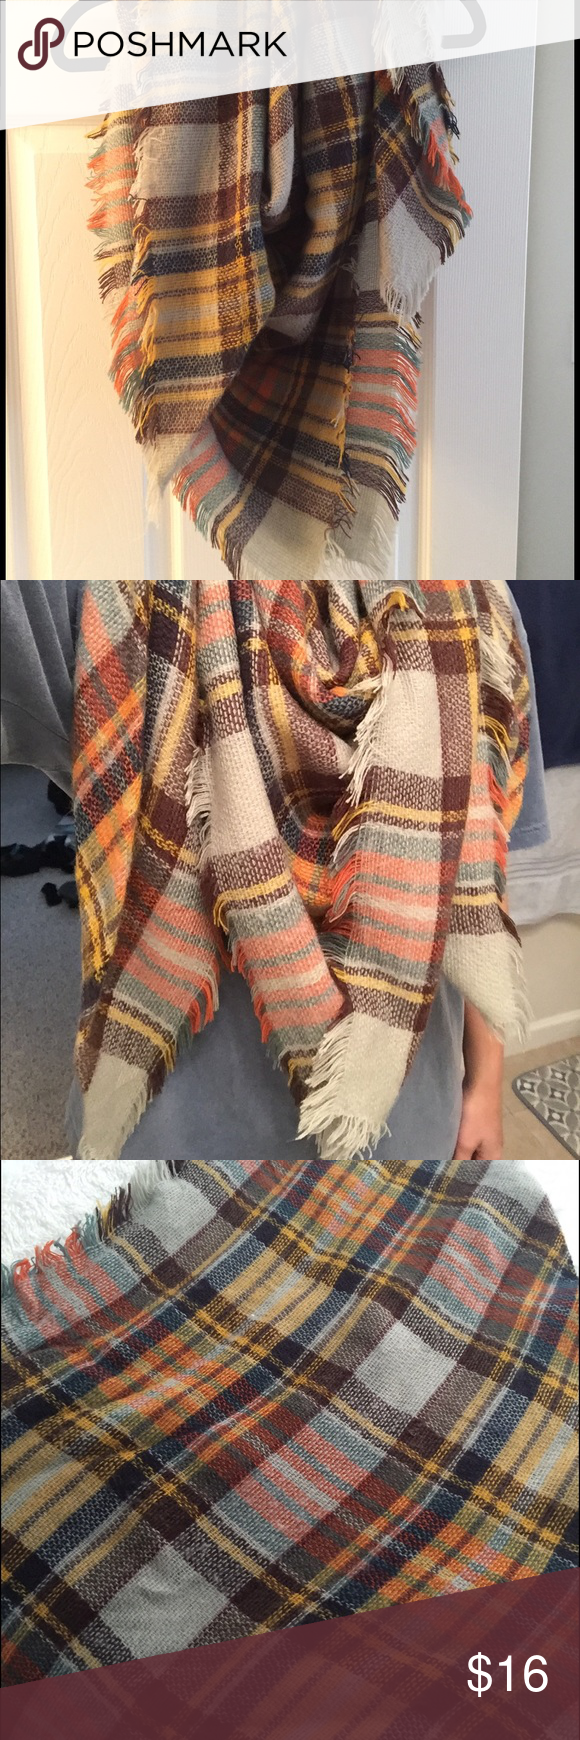 Fall Toned Blanket Scarf Popular blanket scarf! Orange, brown, yellow brown tones! Very warm and cozy and in perfect condition! Only worn once or twice. Boutique Accessories Scarves & Wraps